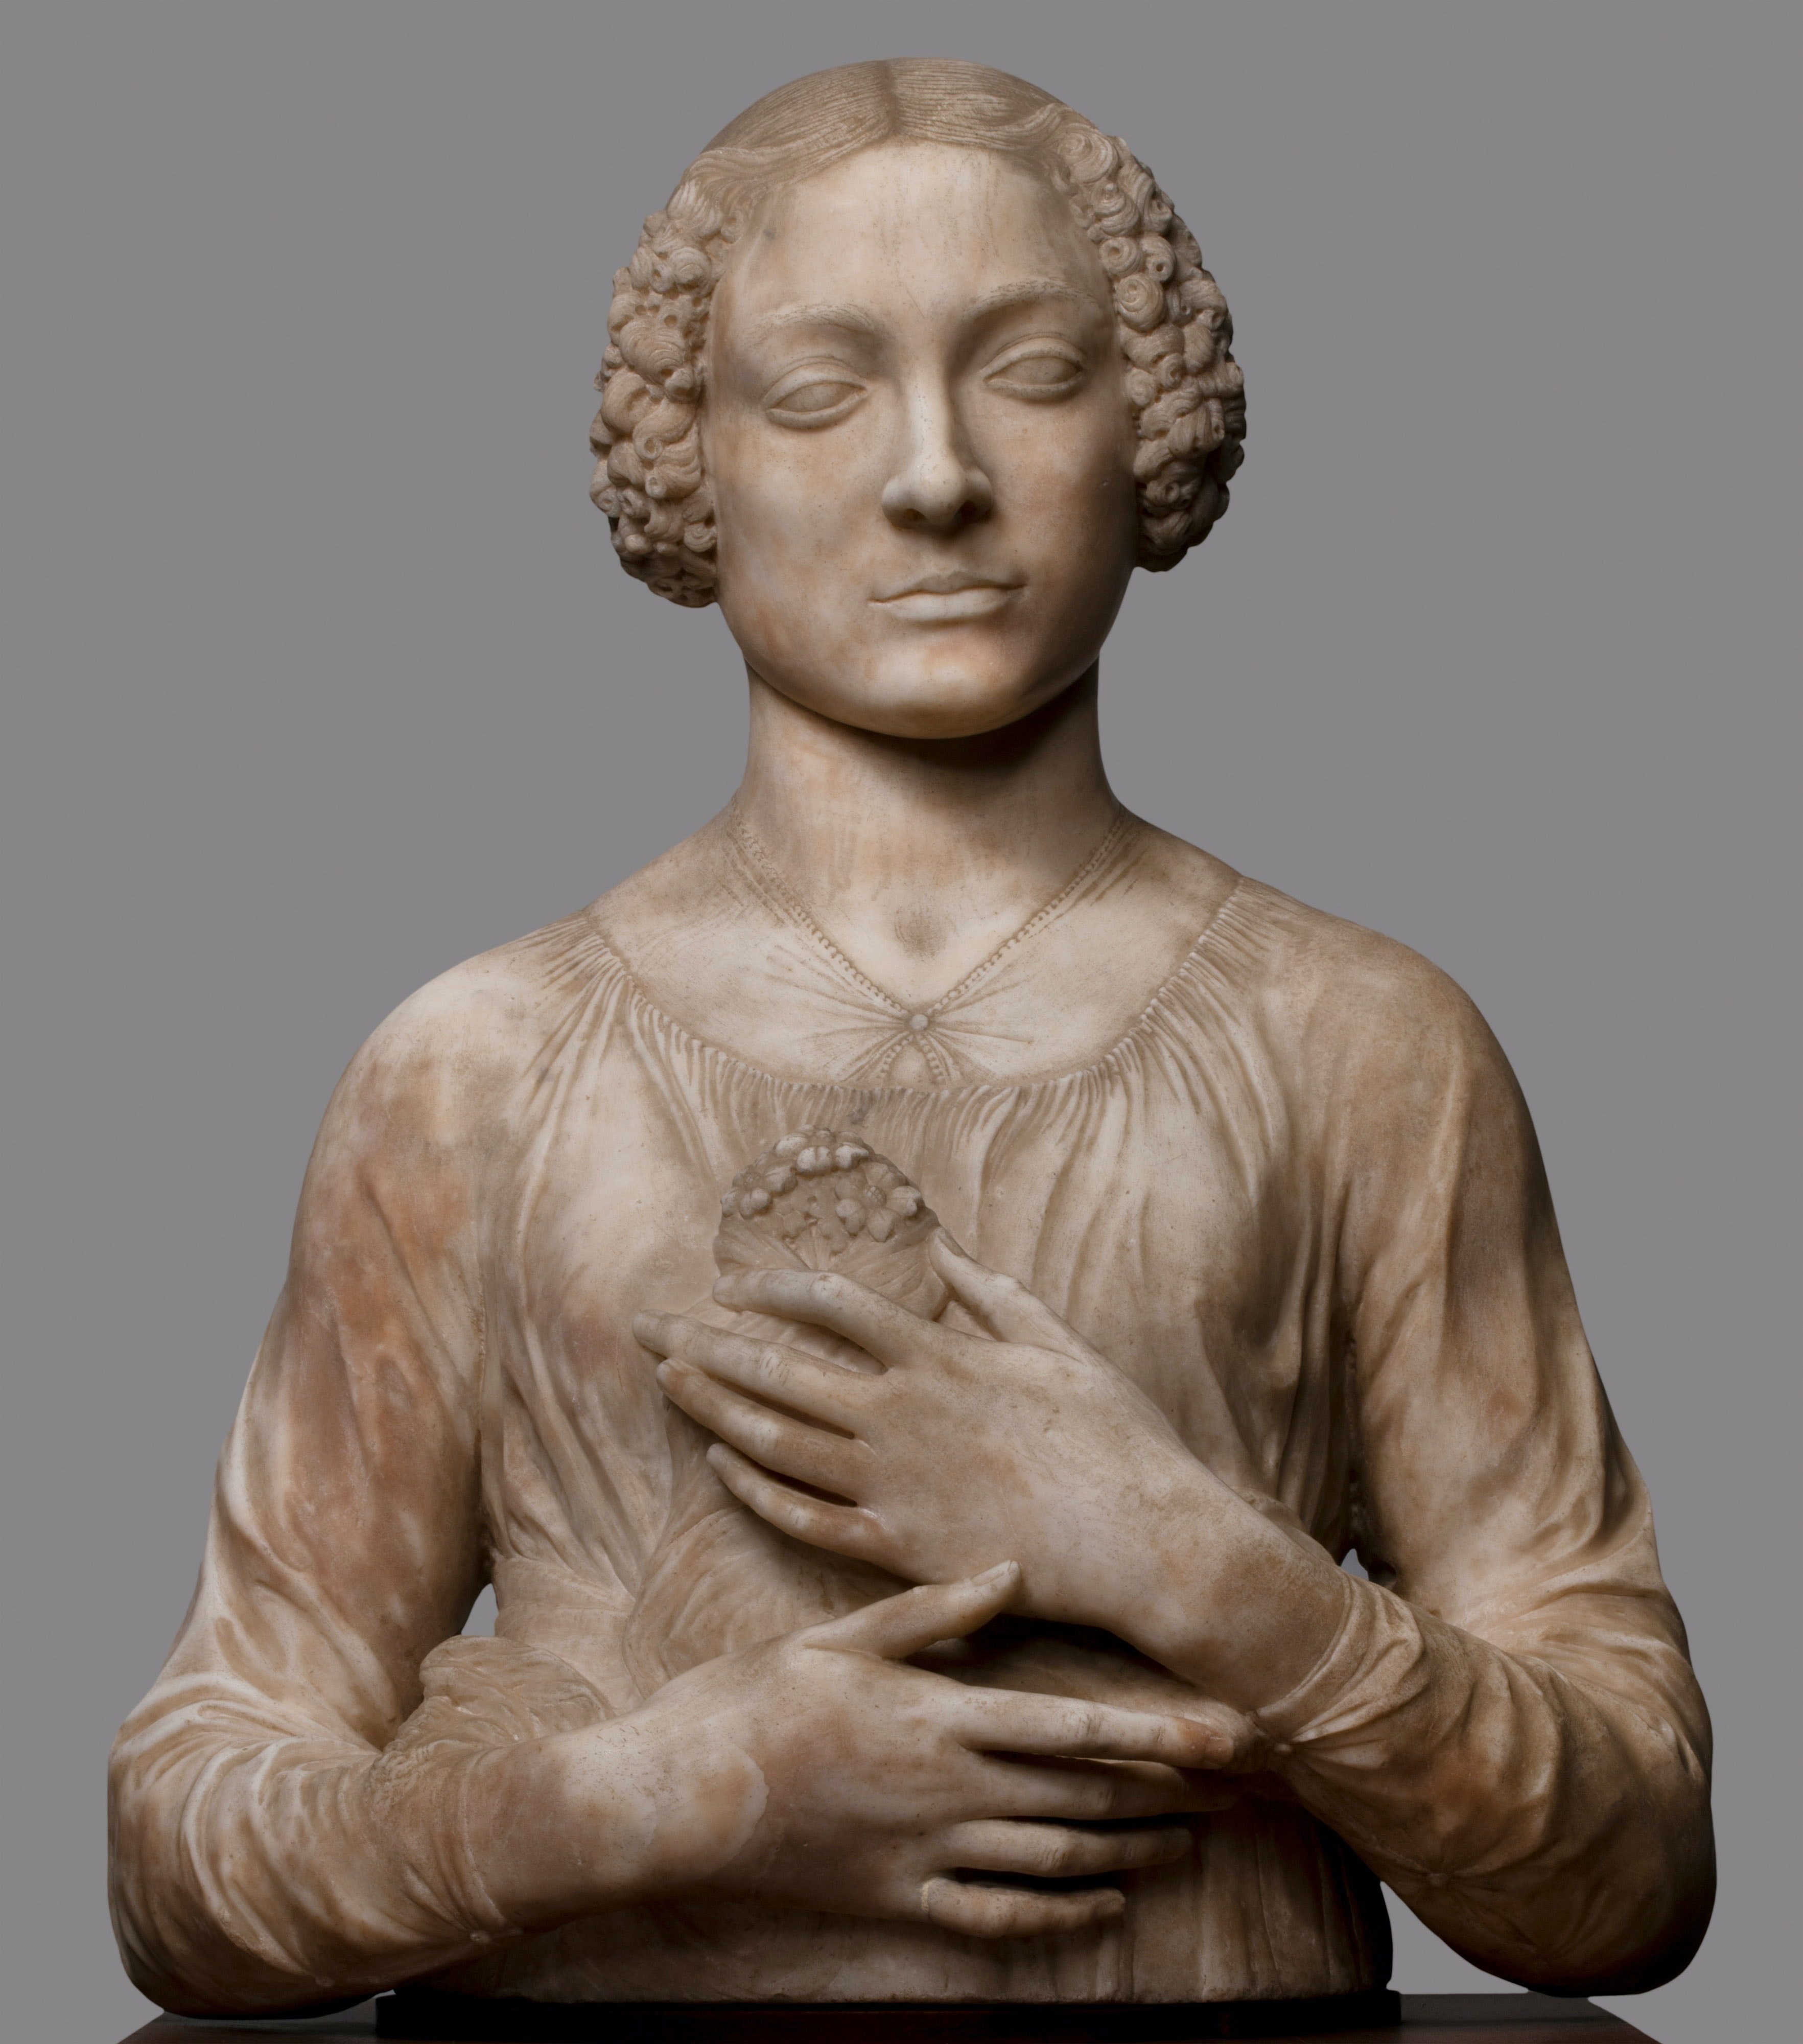 Andrea del Verrocchio, <em>Lady with Flowers</em>, c. 1475–1480. Marble, 23 5/8 x 18 7/8 x 9 13/16 inches. Museo Nazionale del Bargello, Florence.